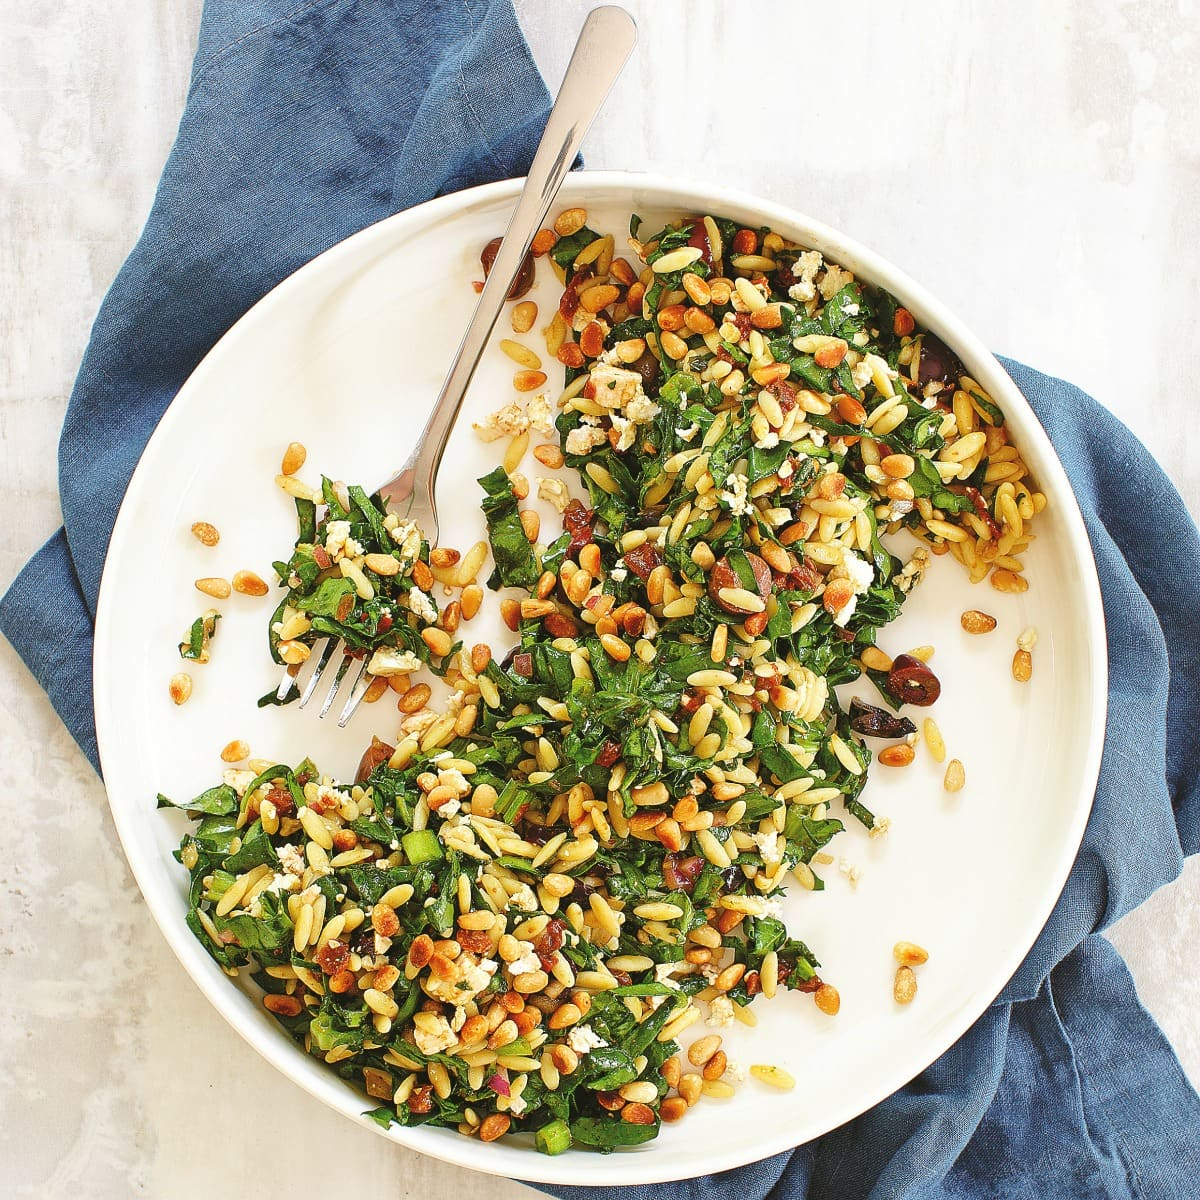 Spinach Orzo Salad is a fast, easy, delicious spinachy side salad chock full of salty feta and olives, flavorful sun-dried tomatoes and toasted pine nuts. Add cooked chopped chicken or another protein to make this a main meal.